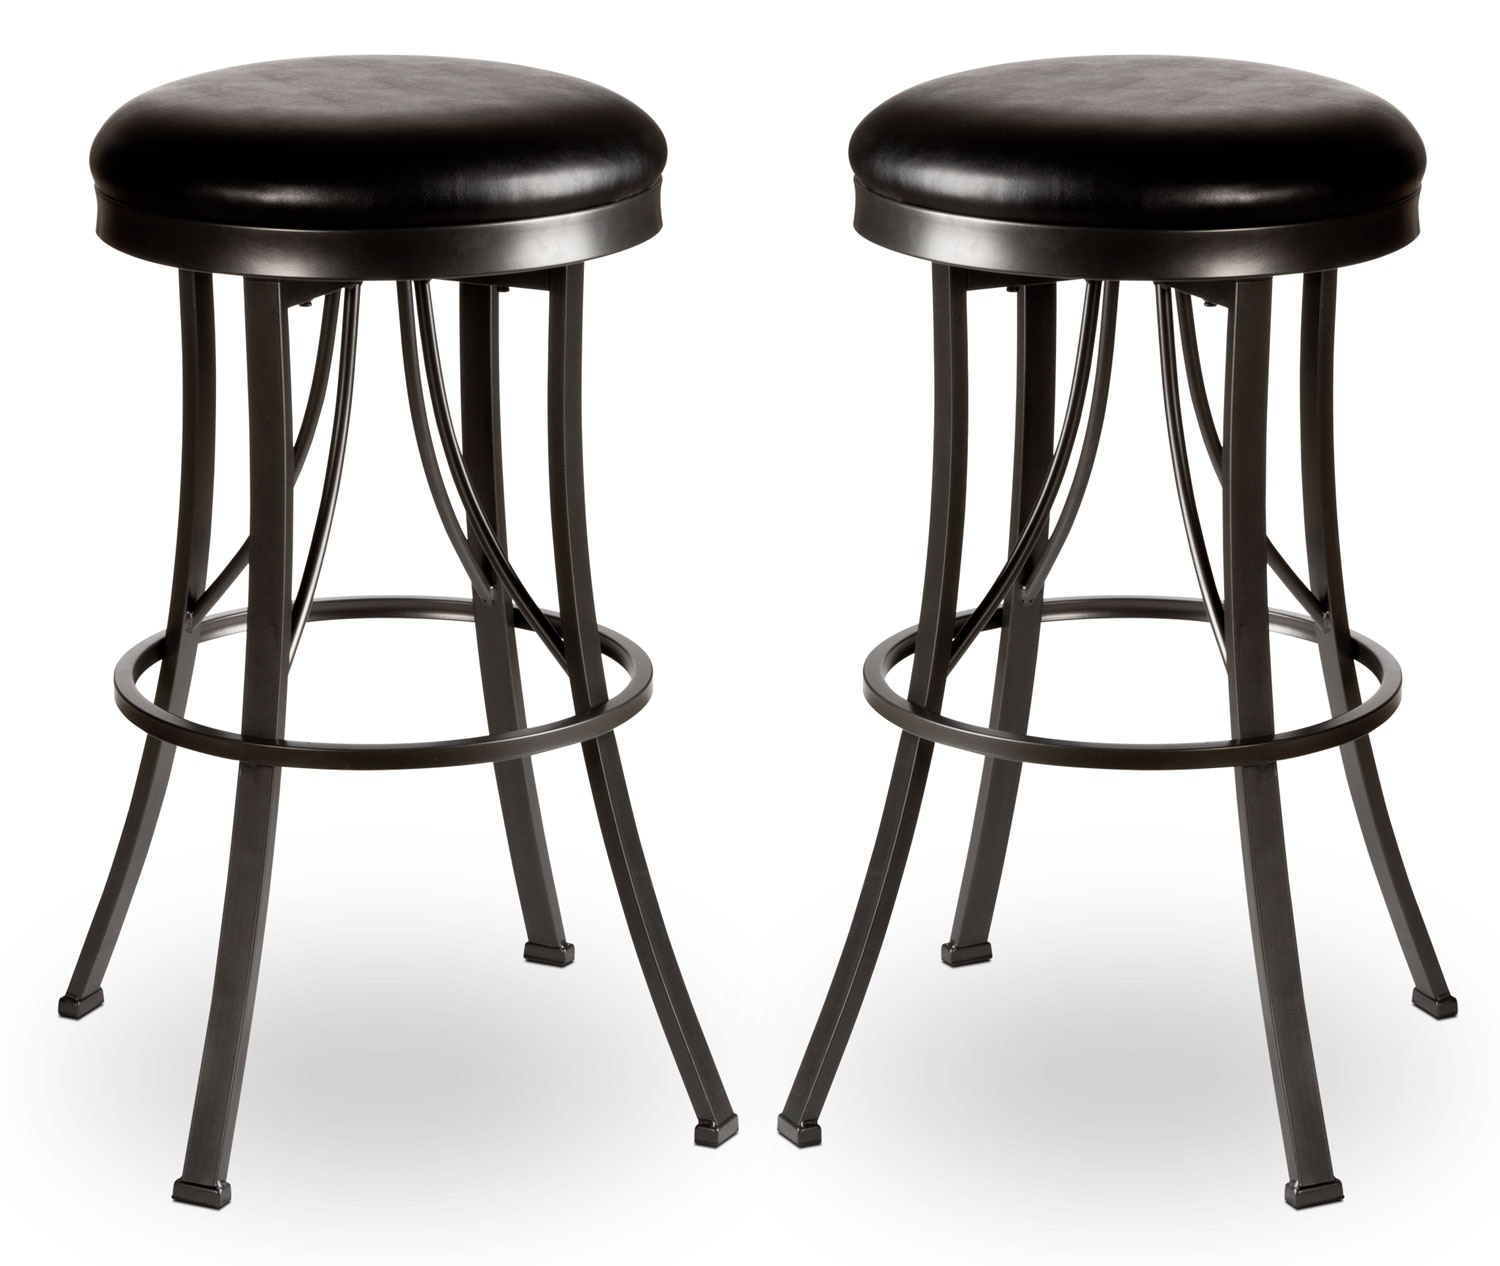 Ontario Backless Counter-Height Swivel Stool – Set of 2